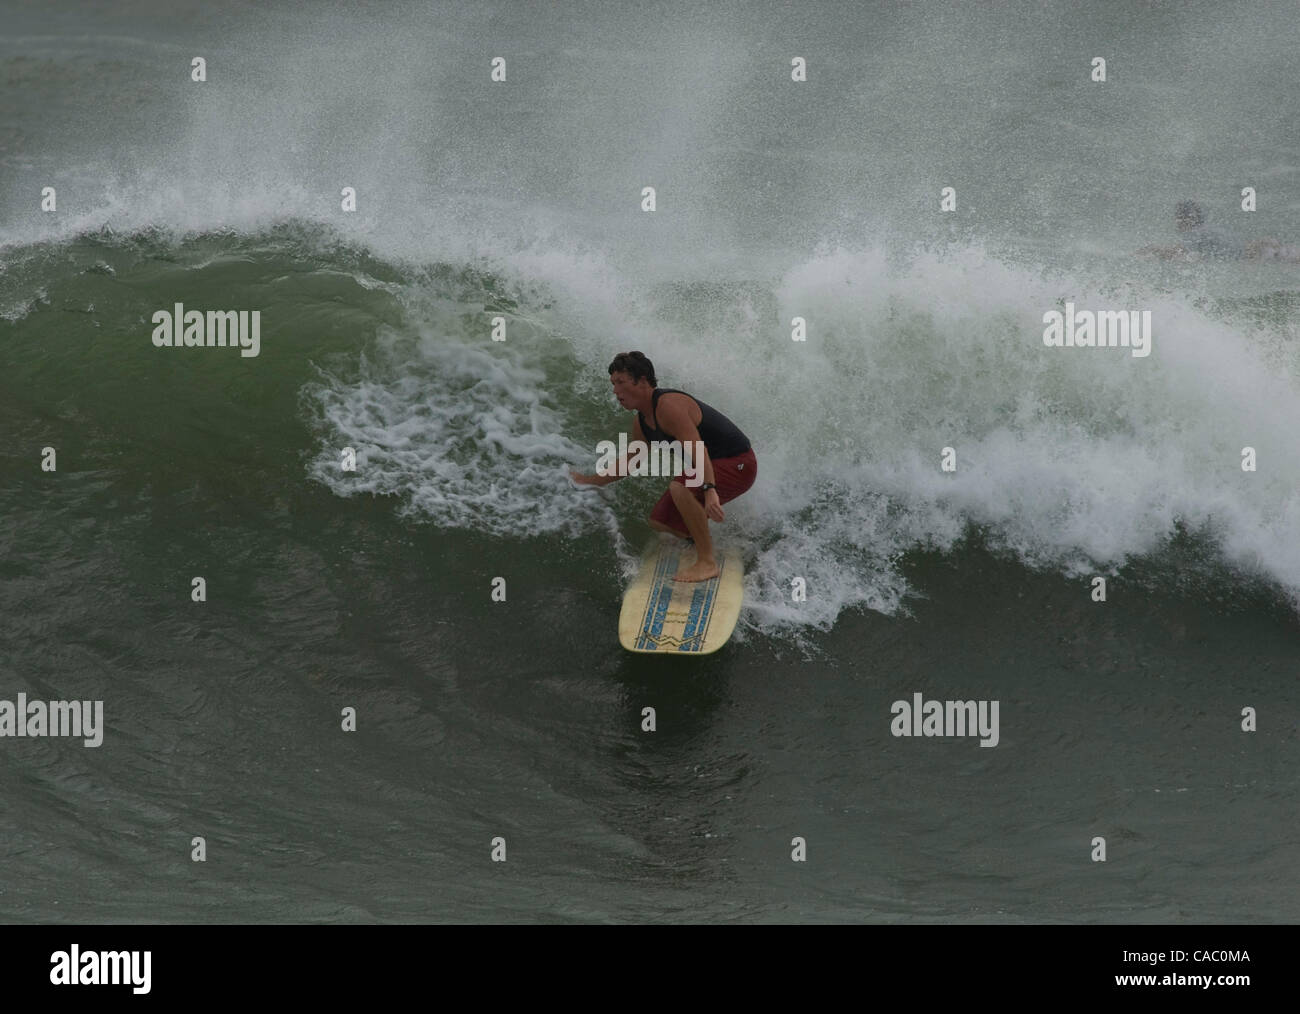 June 29, 2010 - Port Aransas, Texas, USA - 06/29/2010. A surfer catches a wave in Aransas Pass, Texas as swell from - Stock Image